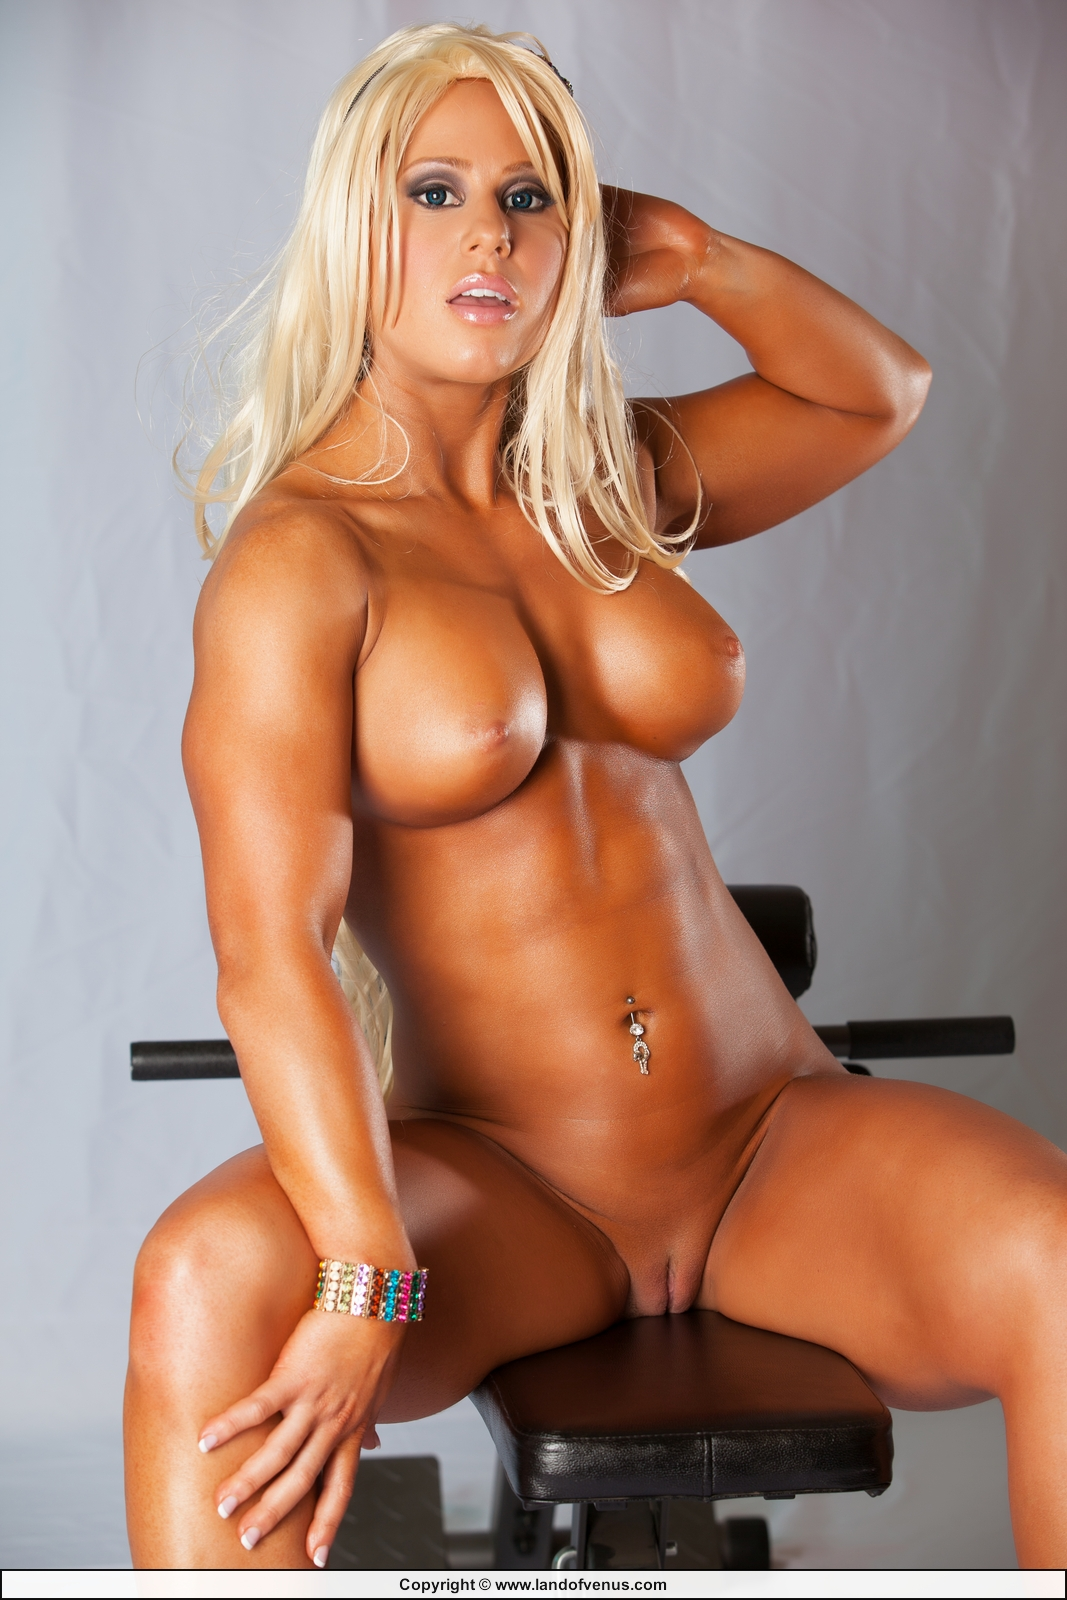 Nude Female Bodybuilders Videos 50